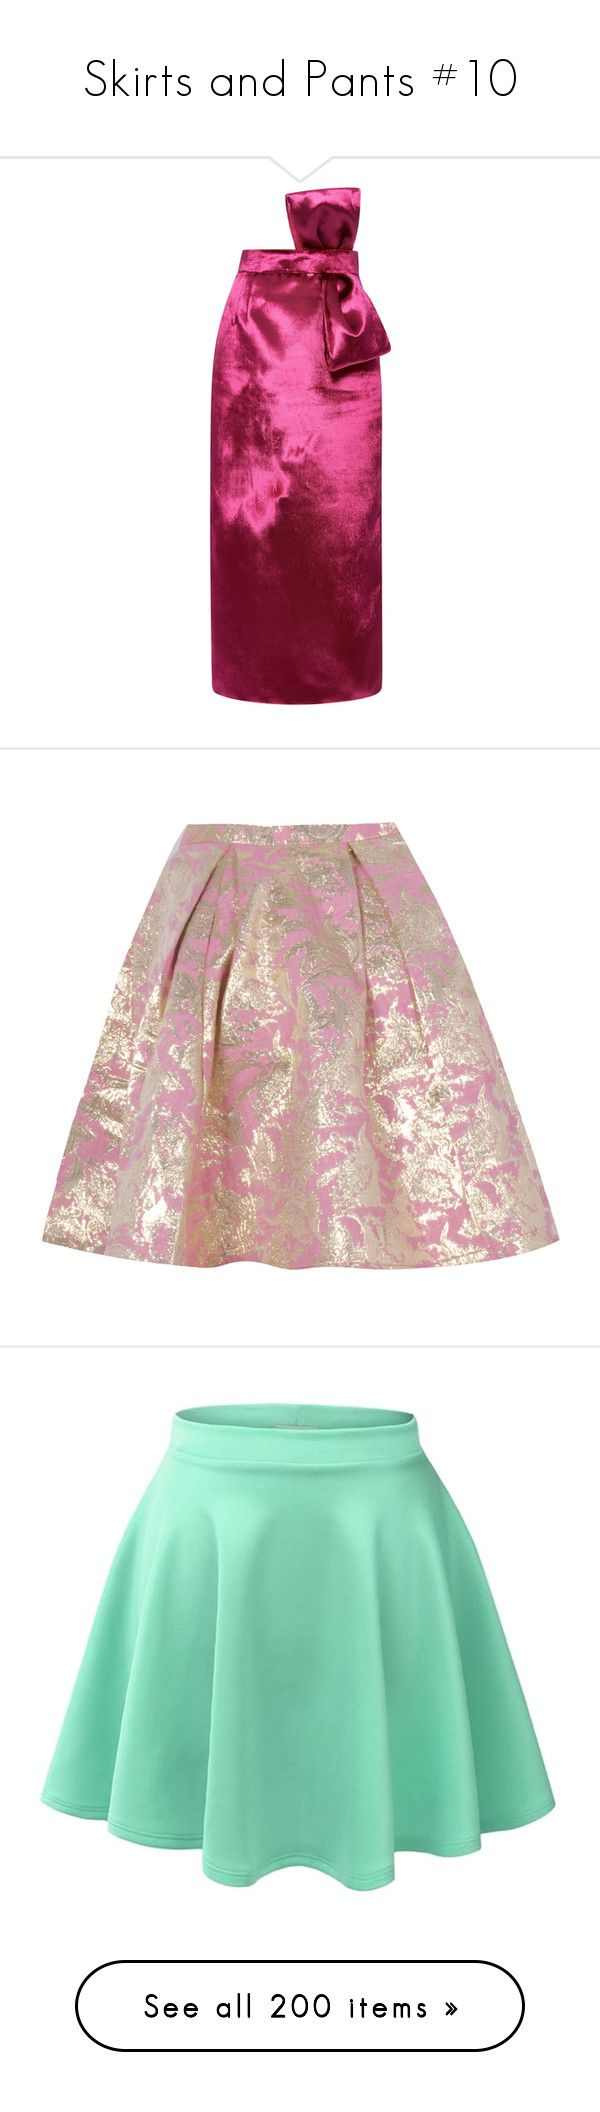 """""""Skirts and Pants #10"""" by summersurf2014 ❤ liked on Polyvore featuring skirts, two piece, two piece skirt, below knee pencil skirt, pencil skirts, below the knee pencil skirts, high waist knee length pencil skirt, mini skirts, pink and gold pleated skirt"""